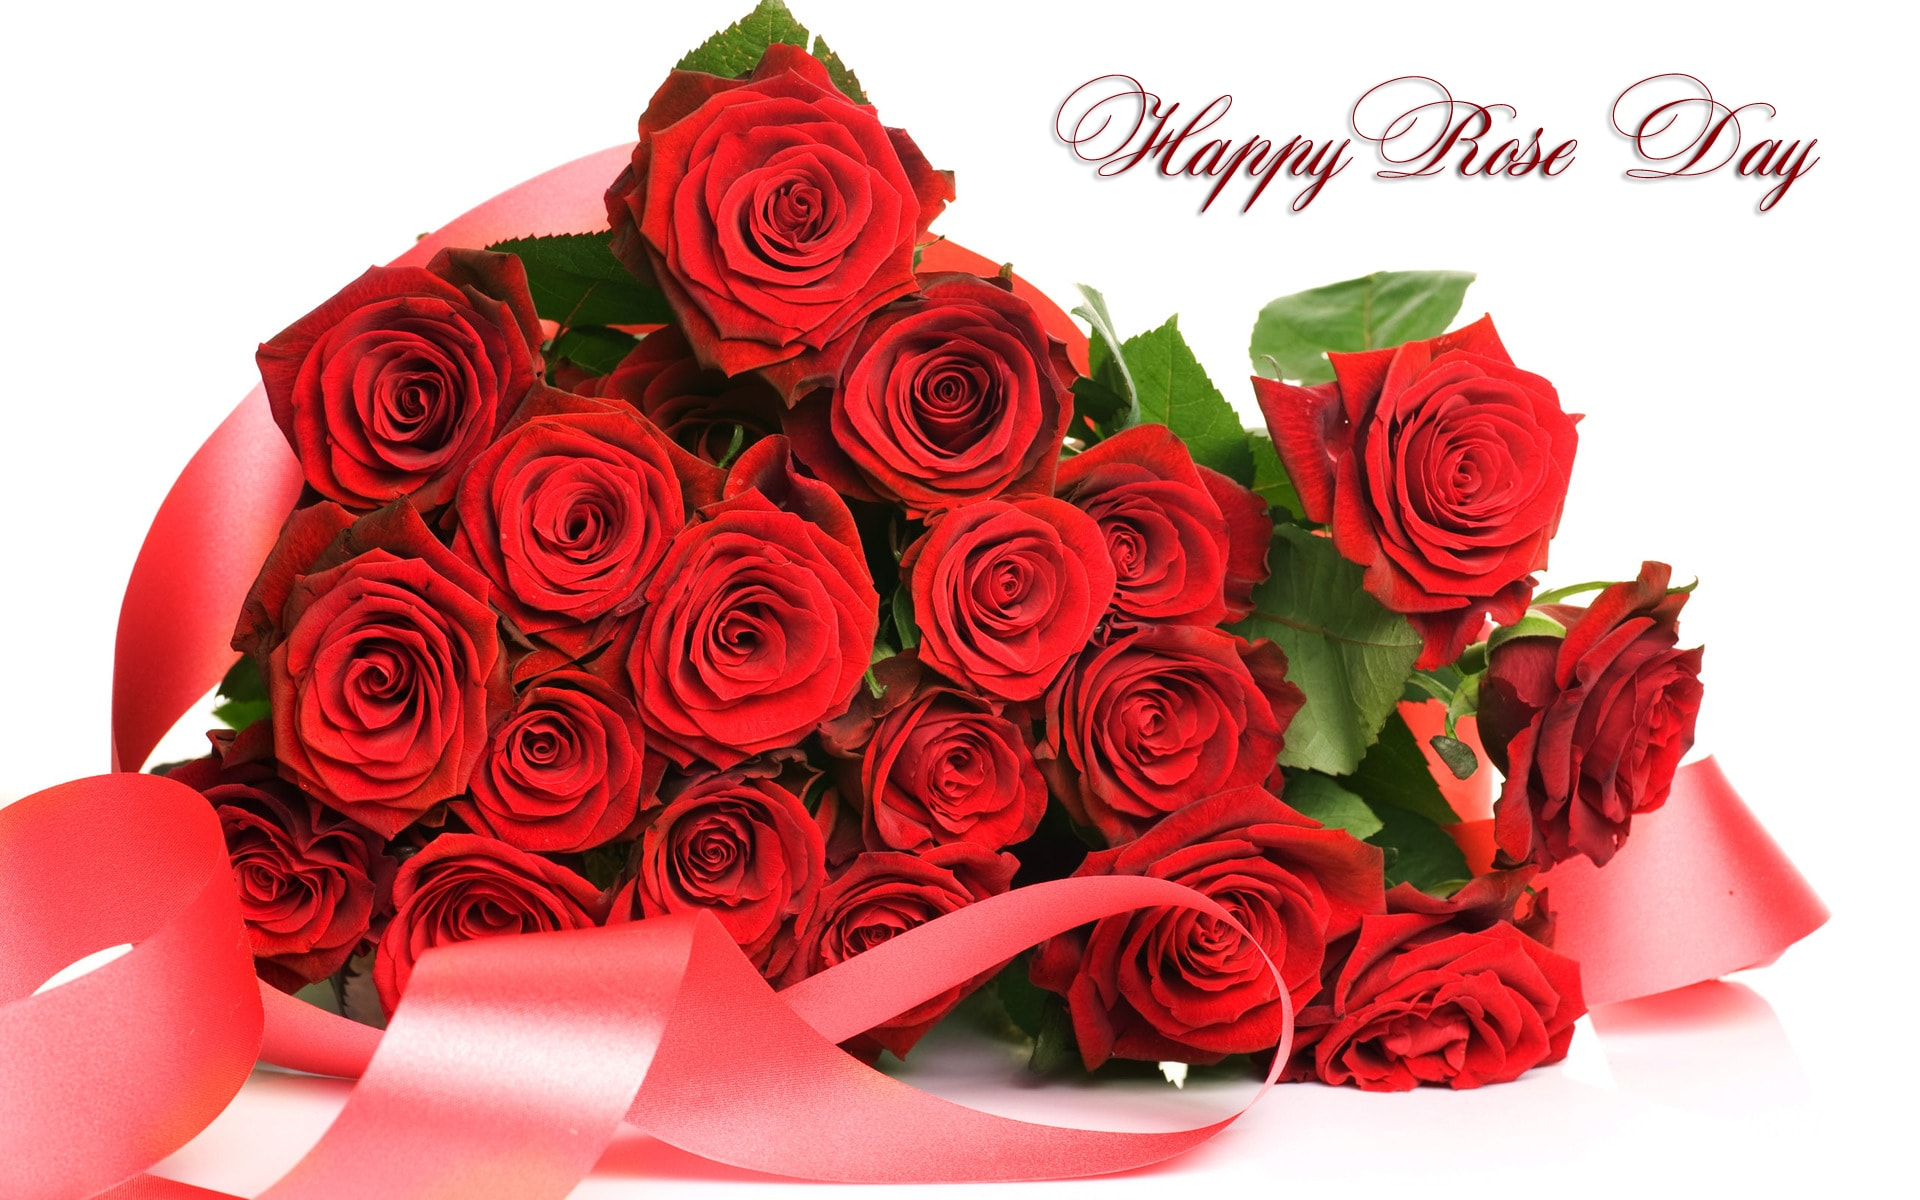 Happy Rose Day Message for Girlfriend for 2018